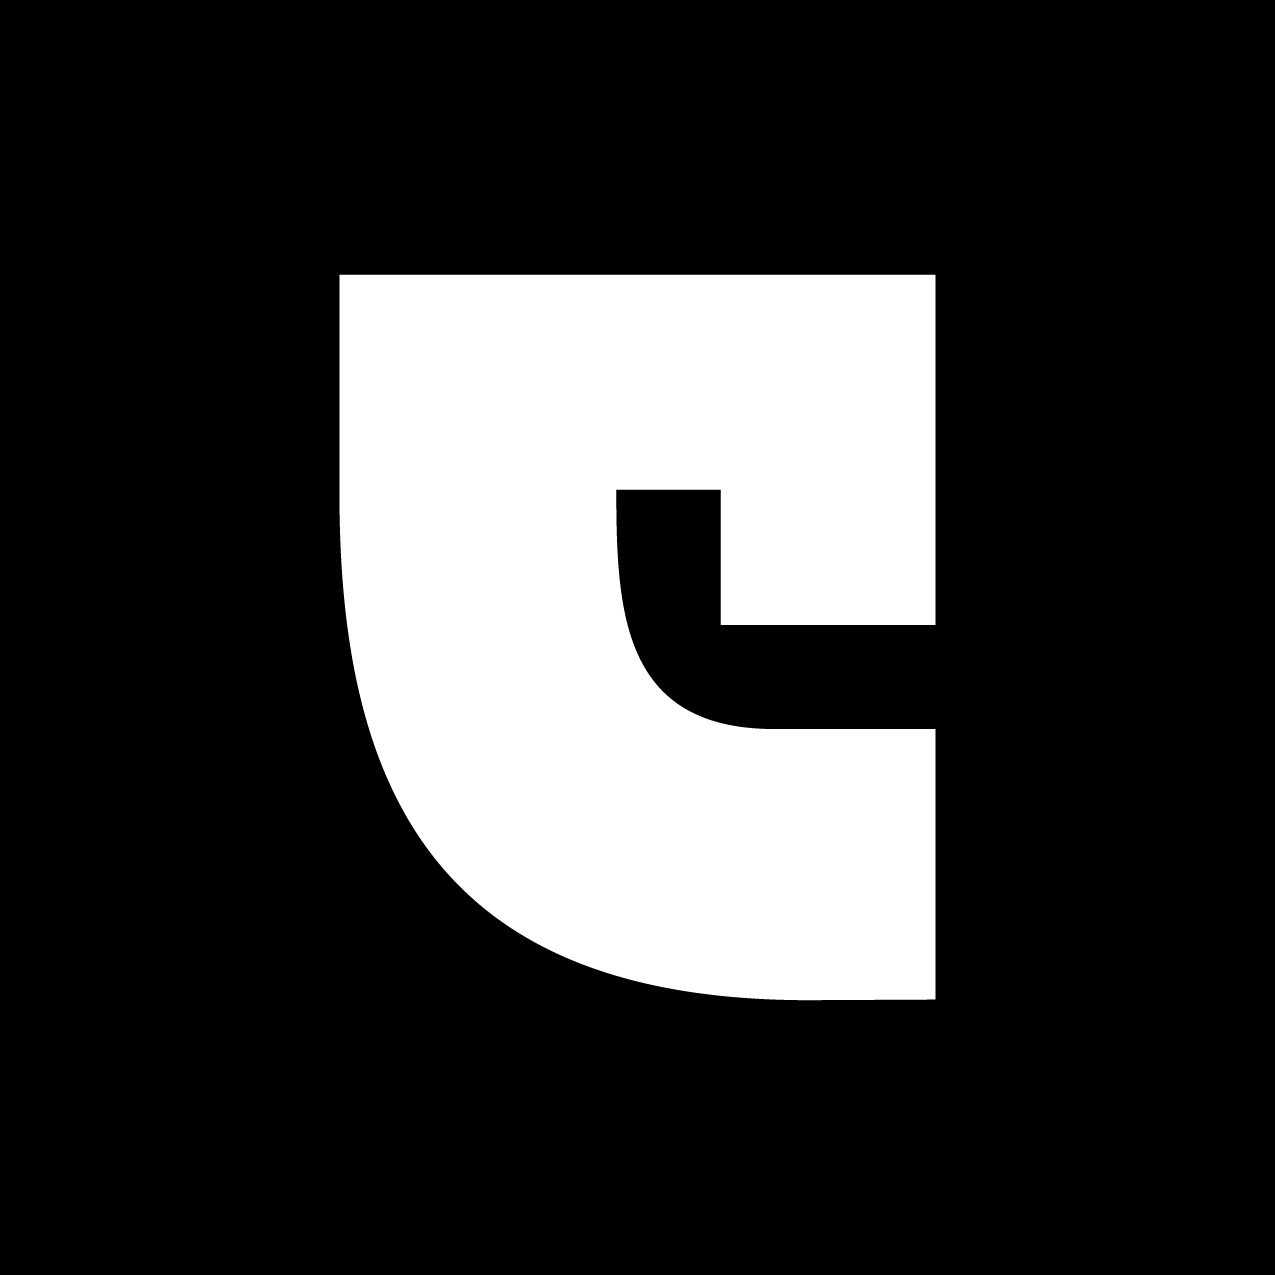 Letter C6 design by Furia